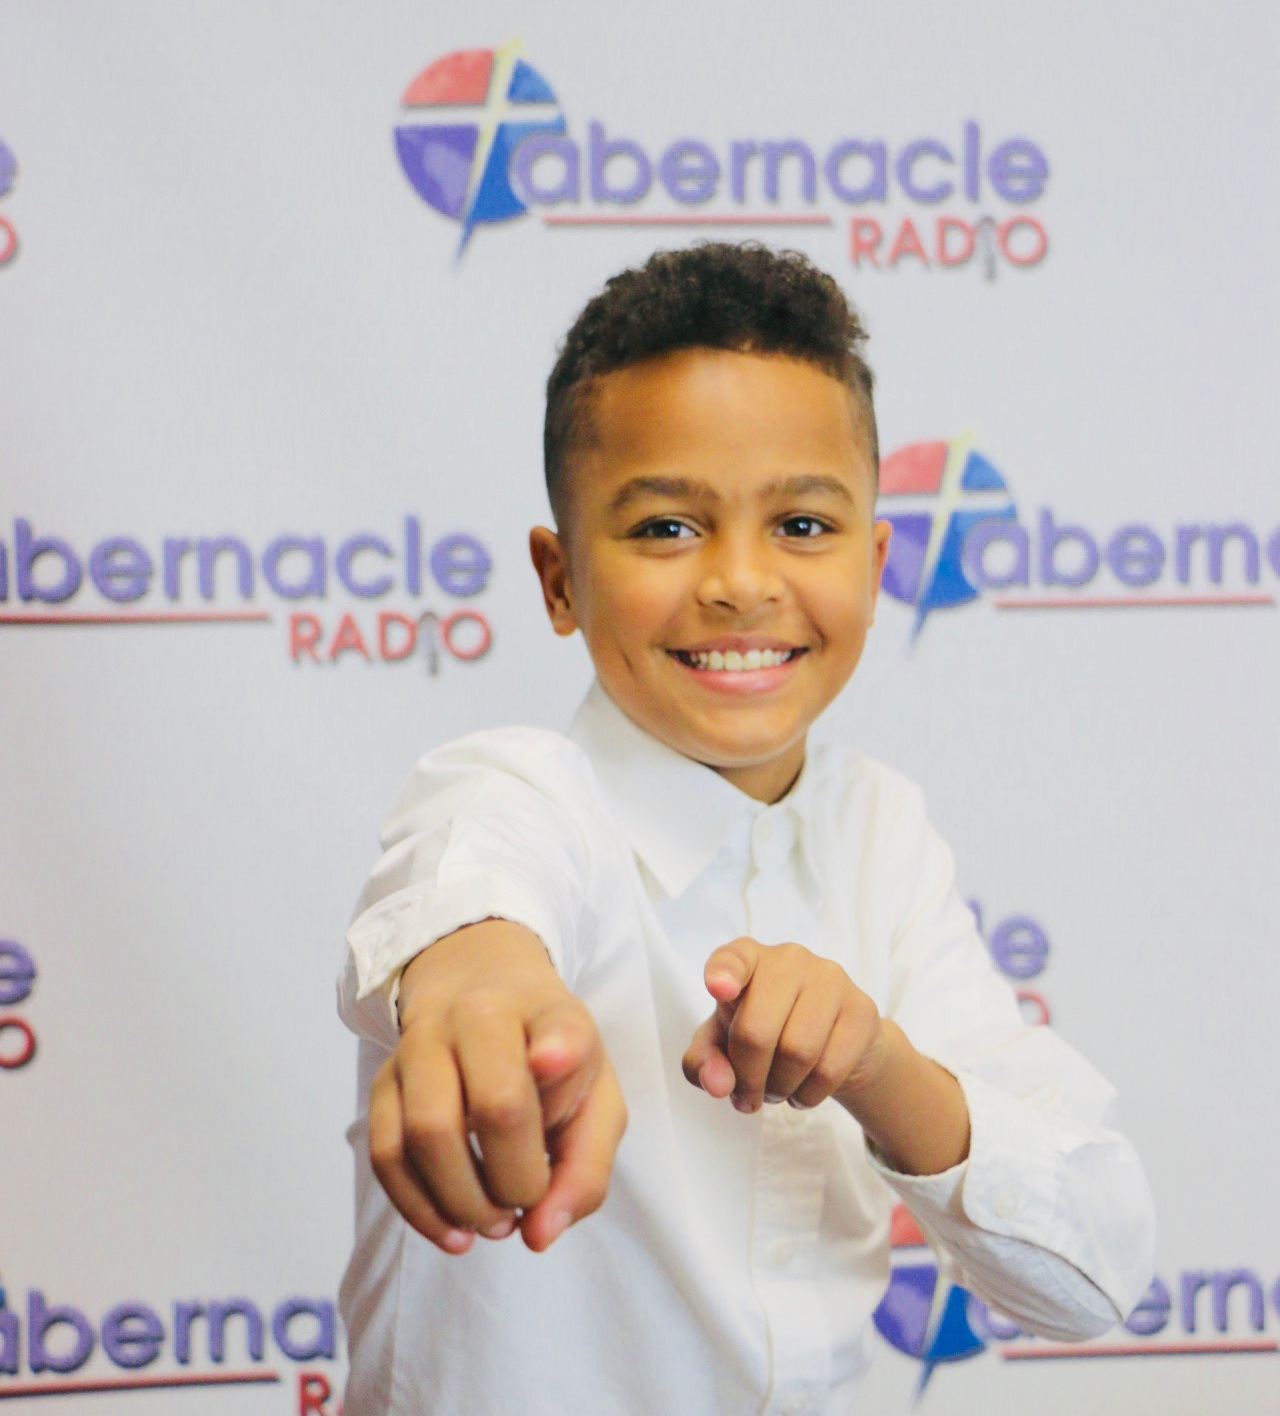 Jaiden hosts show on Tabernacle Radio  - Jaiden was scheduled to be on to host 20 minutes of the J-Gill show on Tabernacle Radio which has reaches audiences across the globe and he took over the radio for the whole hour.  This young man is making amazing things happen through words and actions and we were blessed to have him come speak to our listeners!